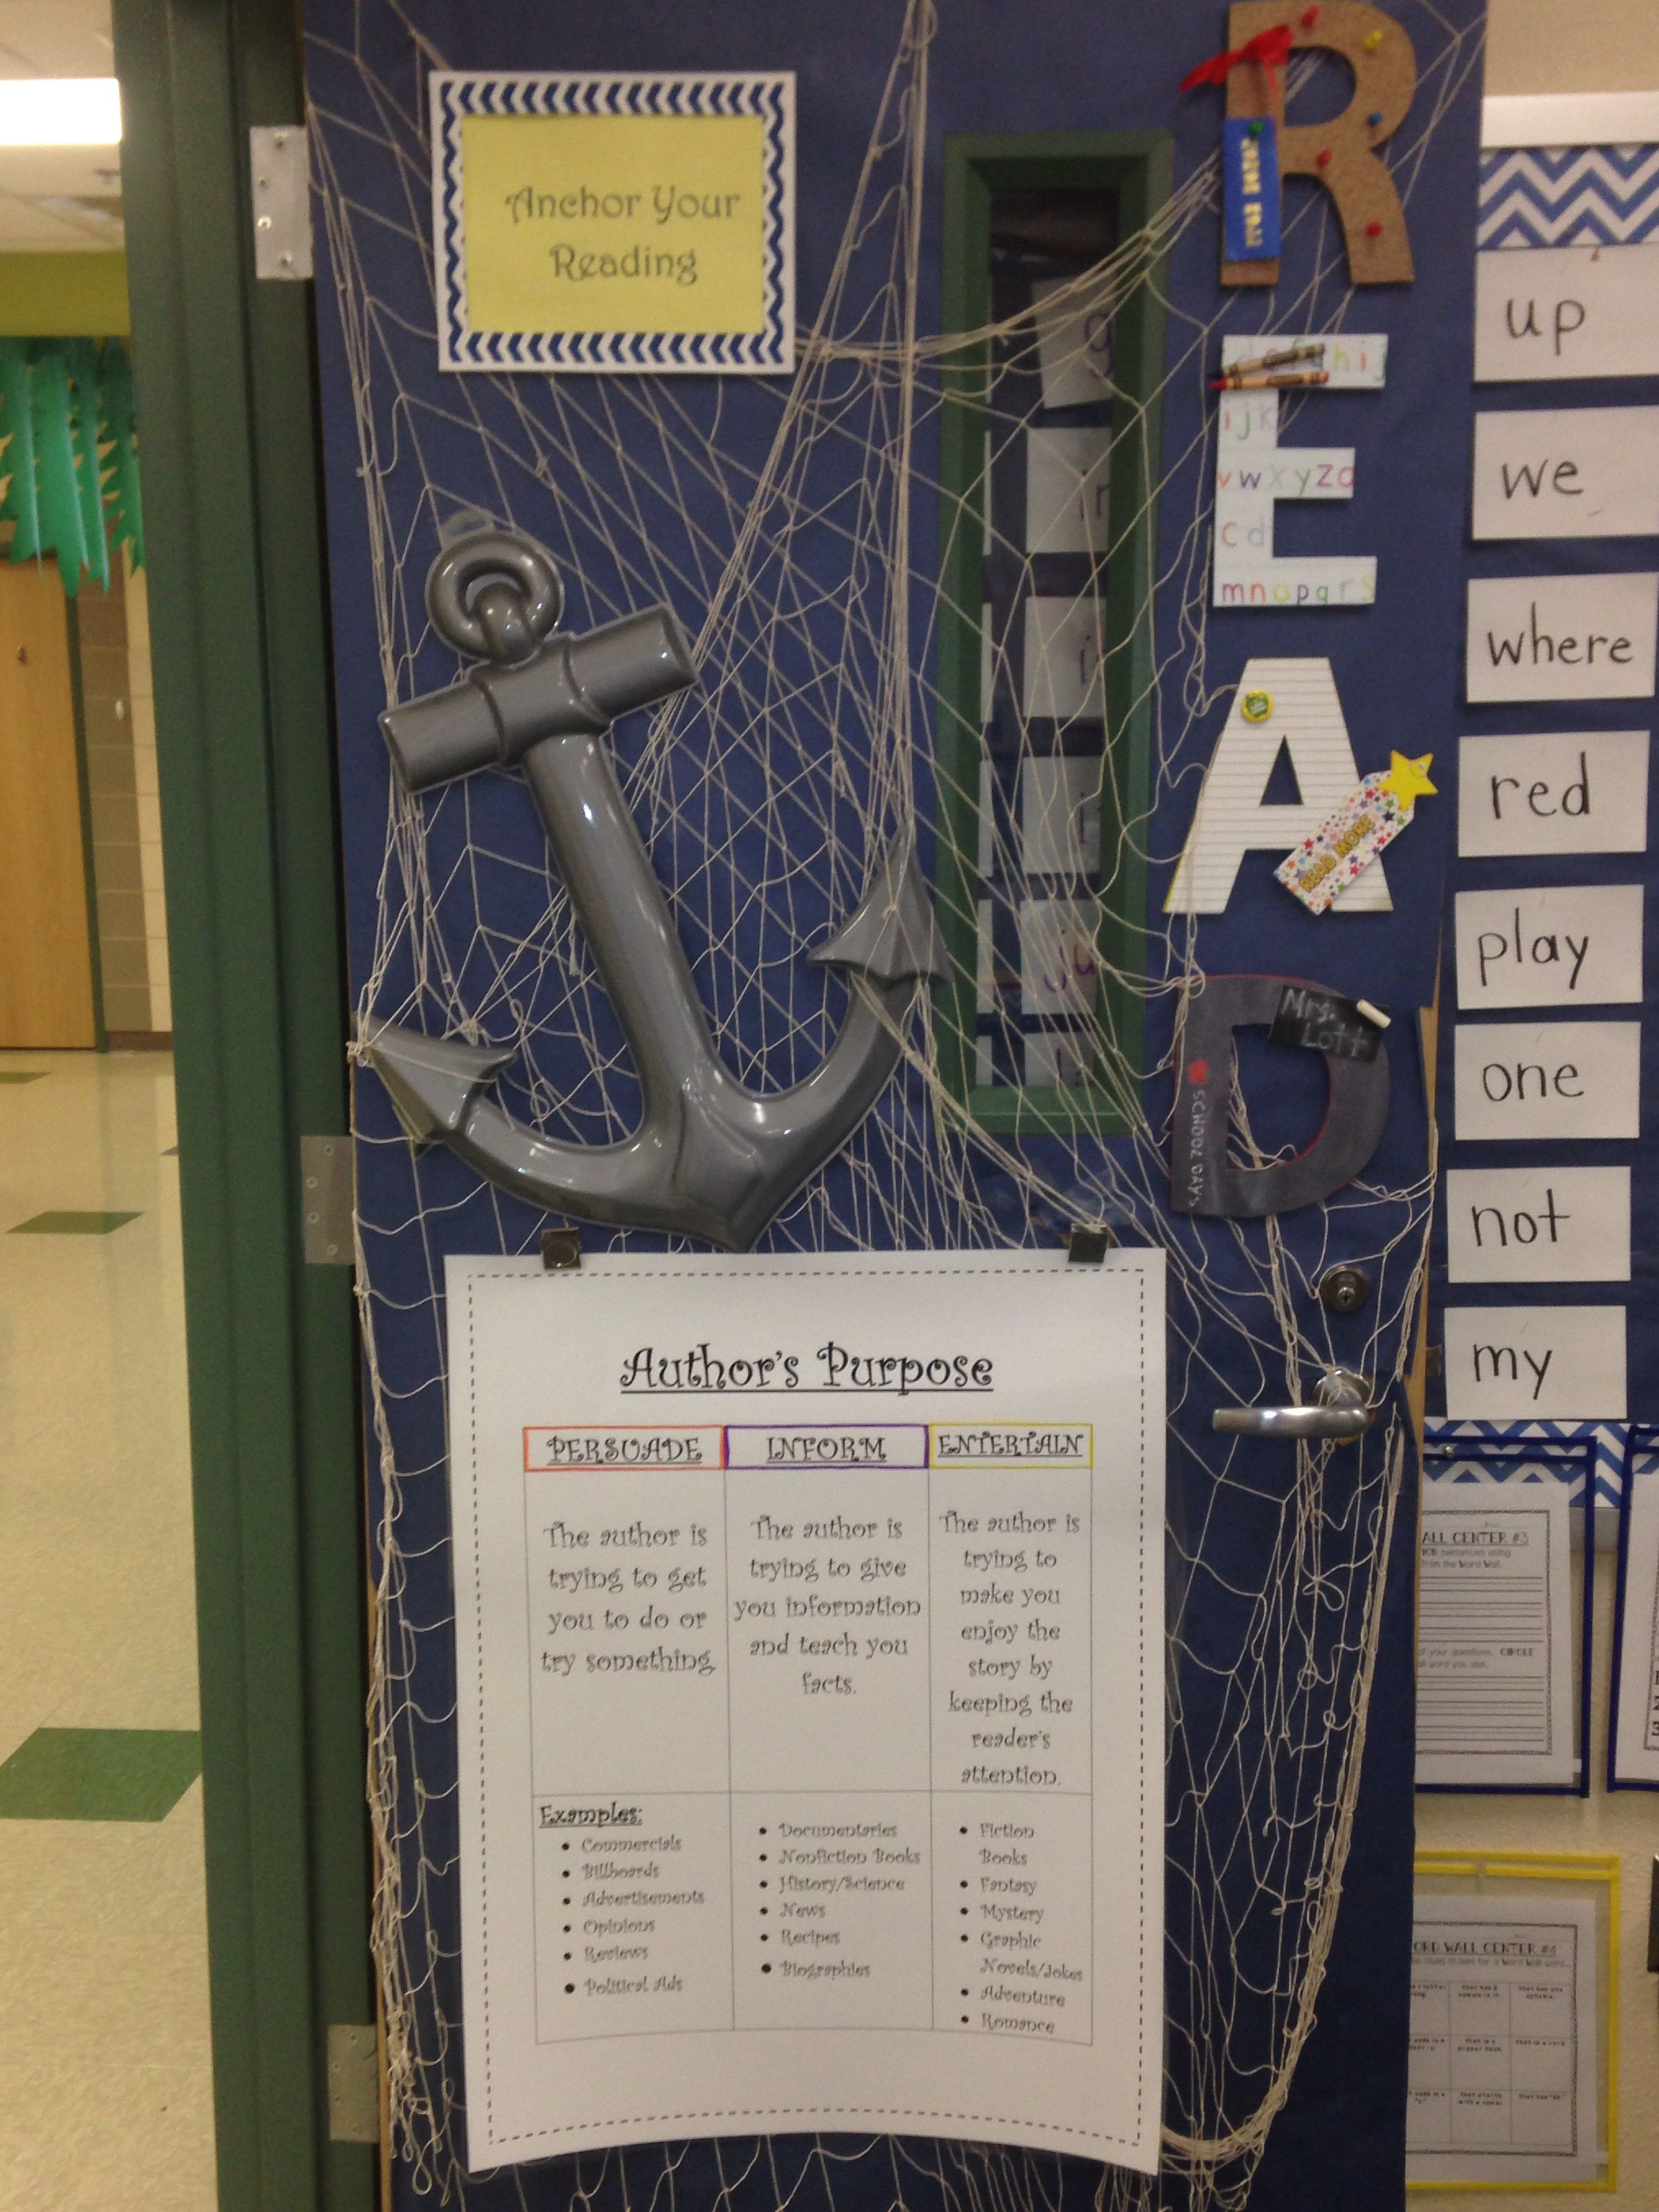 Nautical Door Decoration For My Reading Cl I Changed The Anchor Charts Every Month To Offer Students Staff New Ideas Top Sign Reads Your